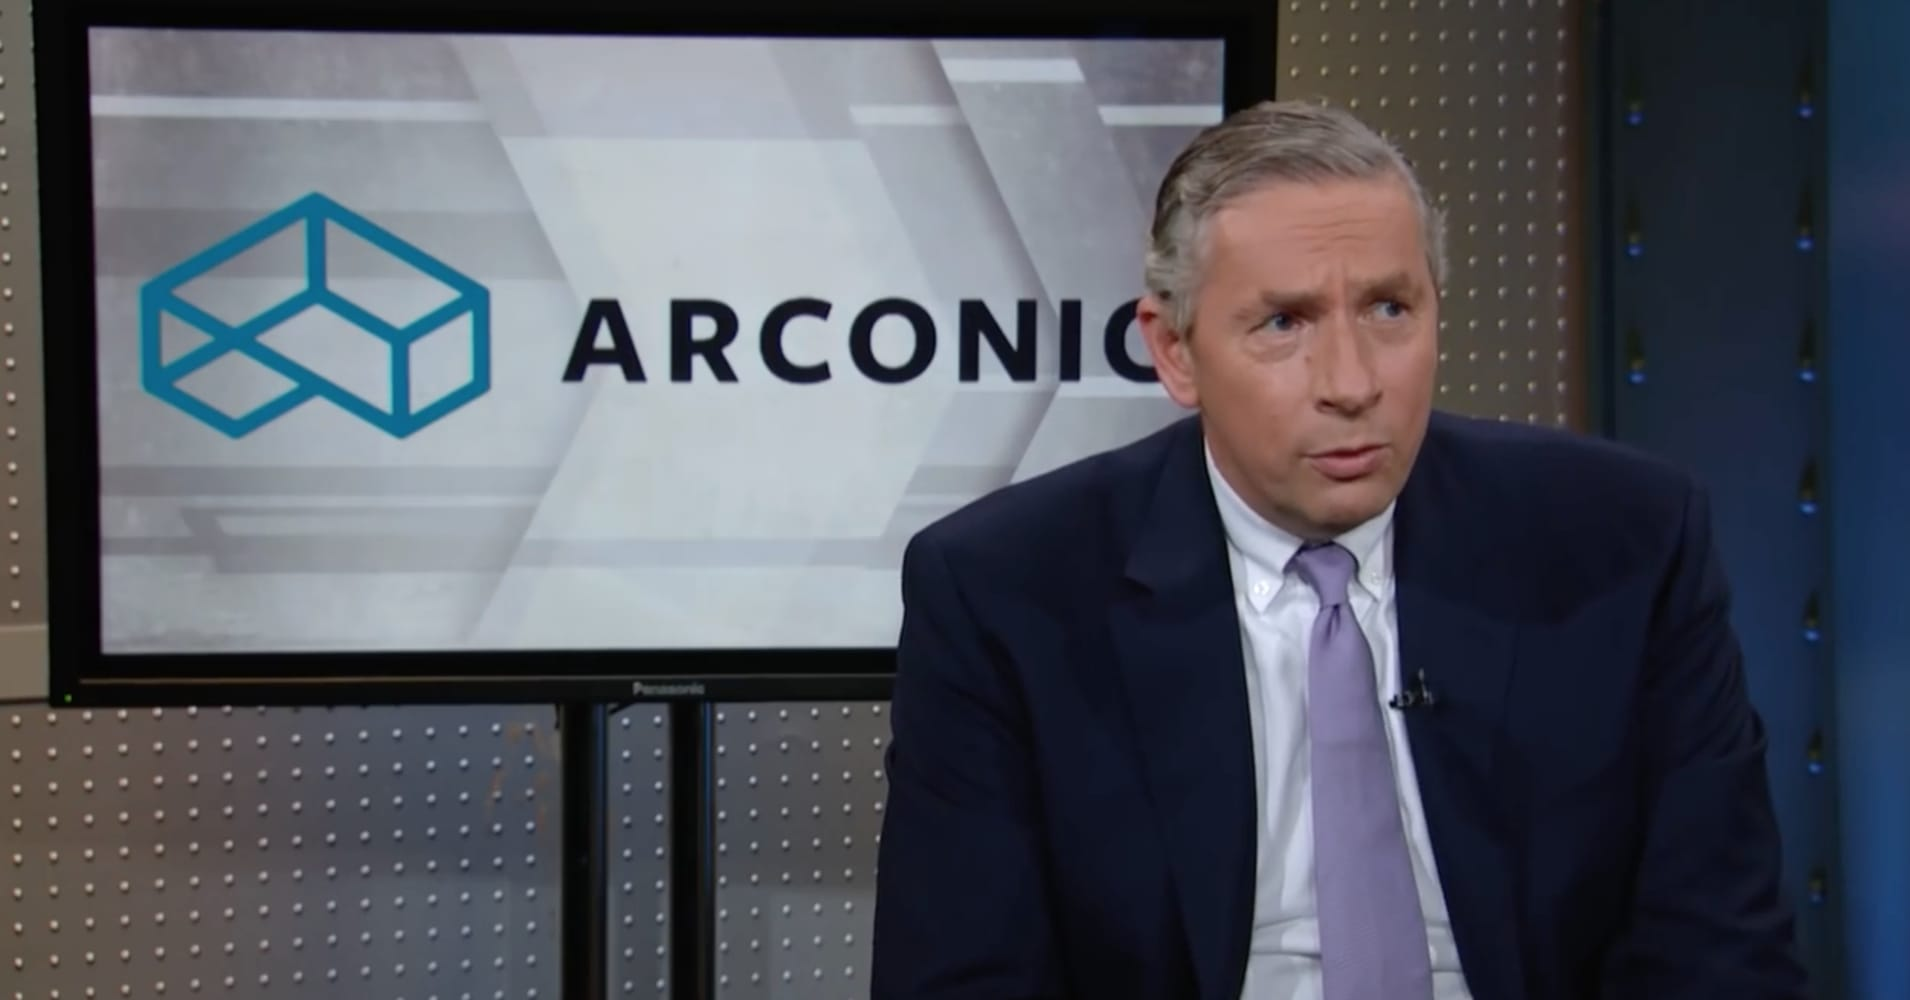 Arconic CEO Klaus Kleinfeld fights back against Paul